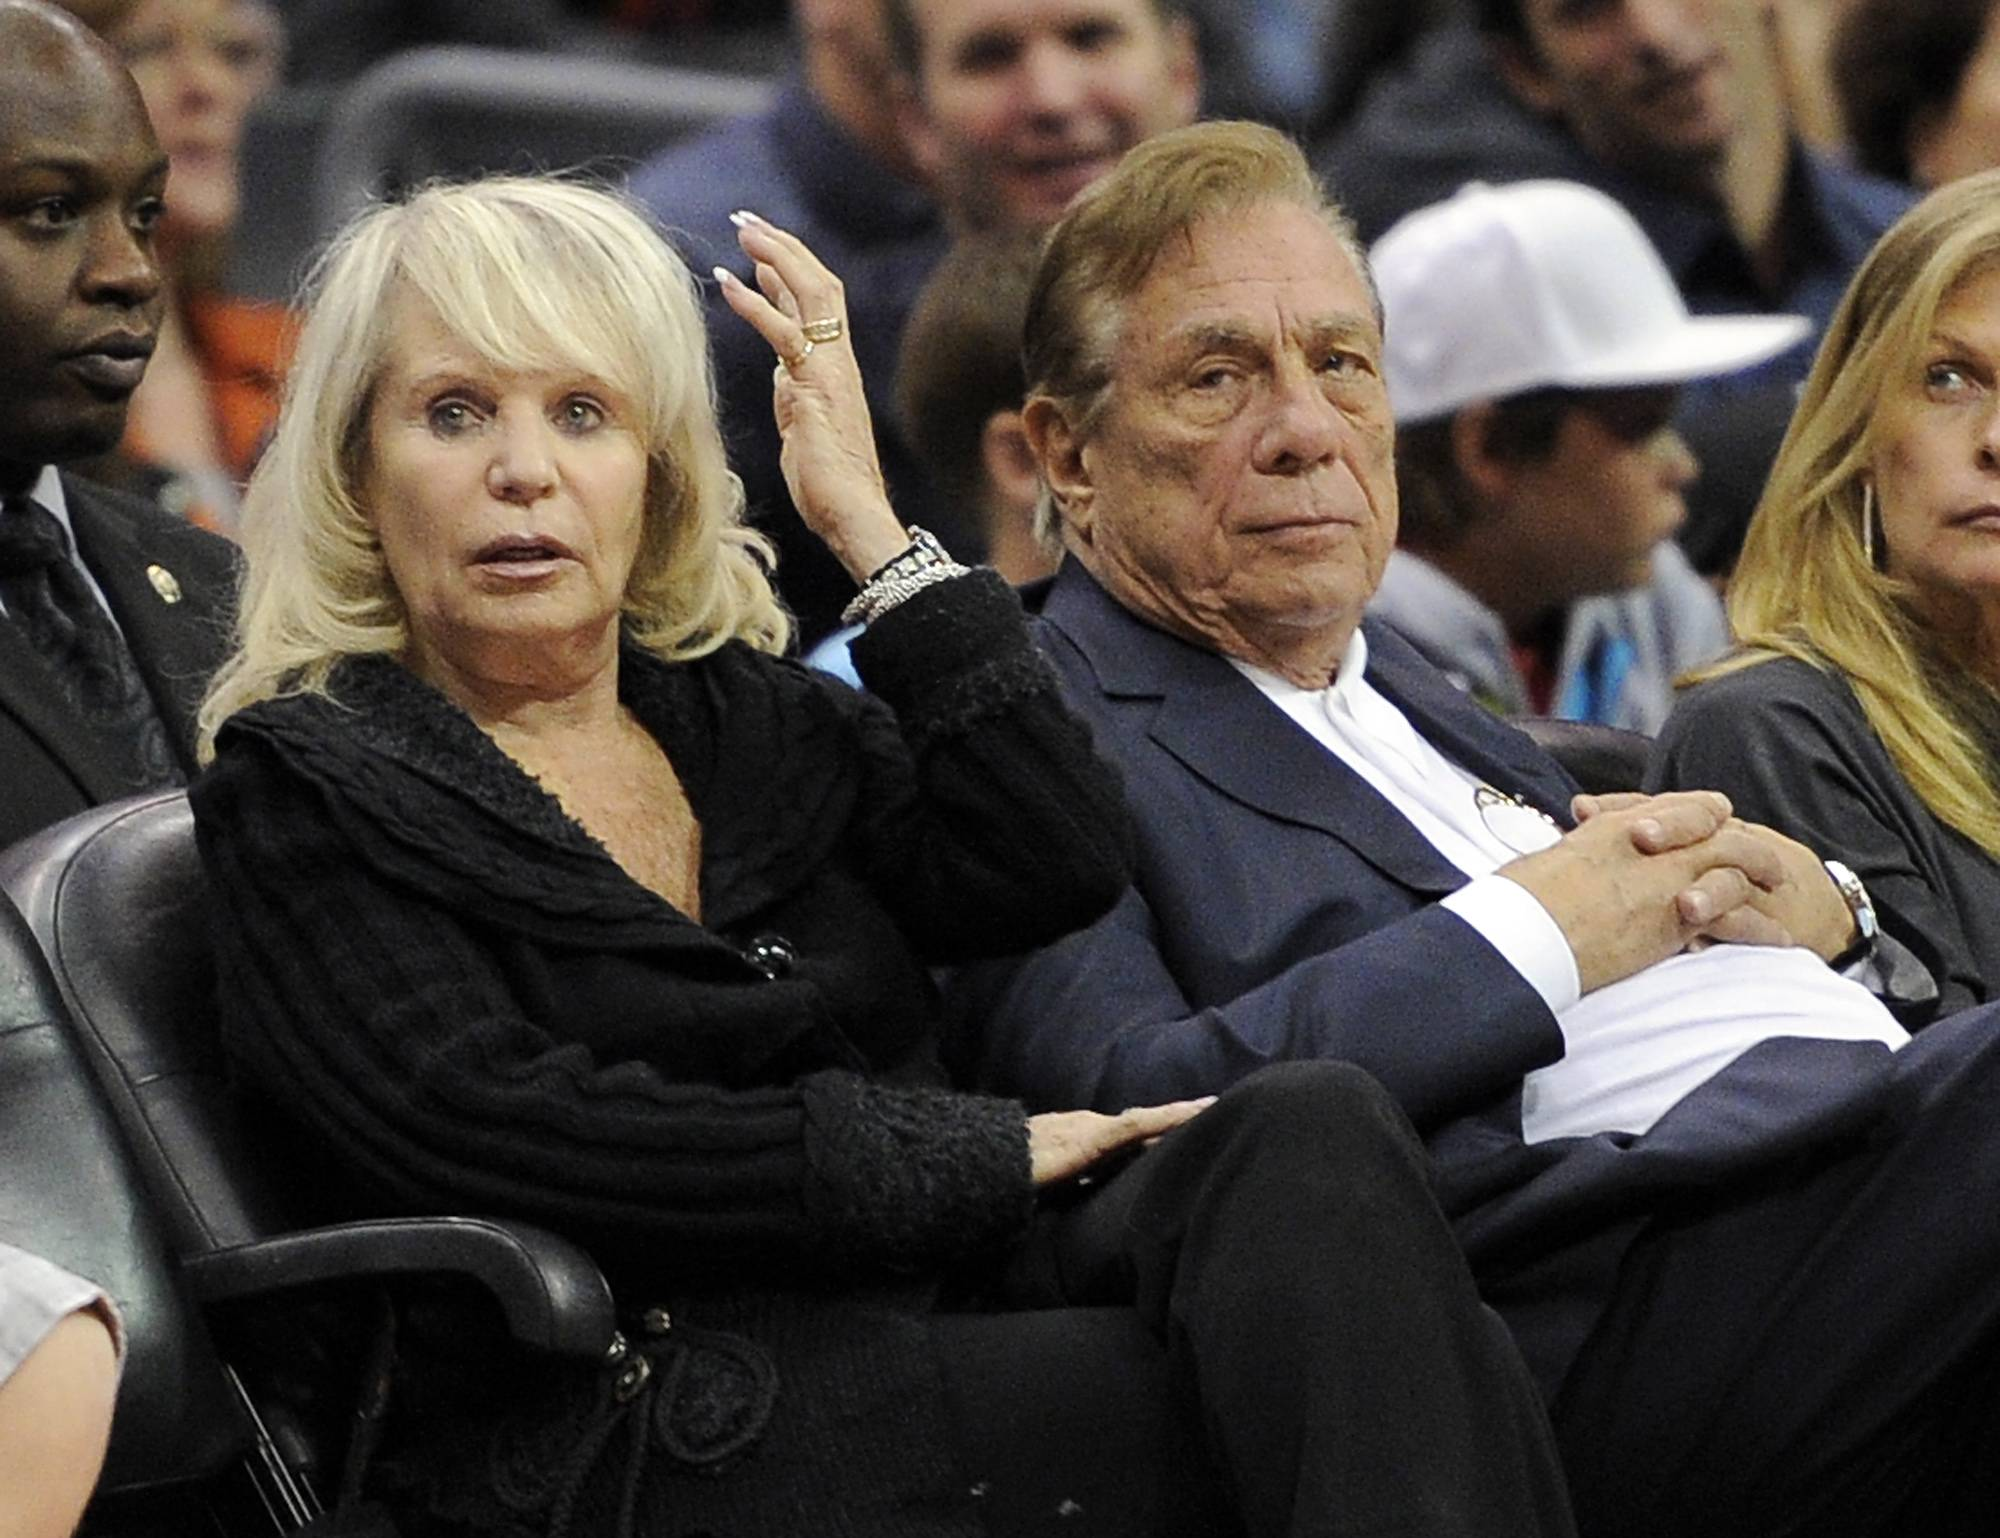 FILE - In this Nov. 12, 2010, file photo, Shelly Sterling sits with her husband, Donald Sterling, right, during the Los Angeles Clippers' NBA basketball game against the Detroit Pistons in Los Angeles. Shelly Sterling's attorneys have asked a court on Thursday June 19, 2014, to hold a hearing on allegations that Donald Sterling and his attorneys have threatened her legal team and the doctors who assert that the Los Angeles Clippers co-owner is mentally incapacitated.